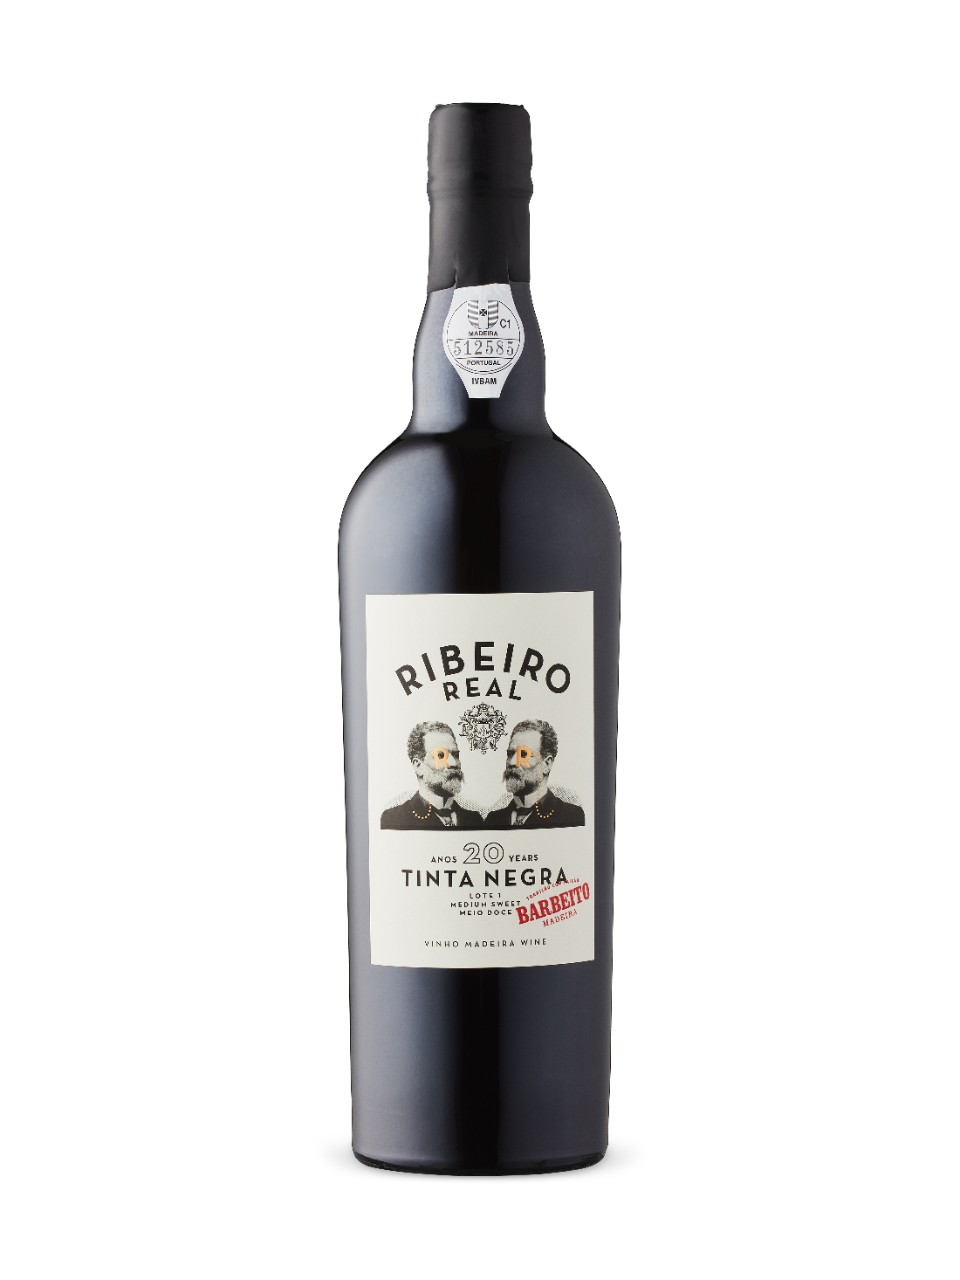 Barbeito Ribeiro Real 20 Year Old Tinta Negro Medium Sweet Madeira